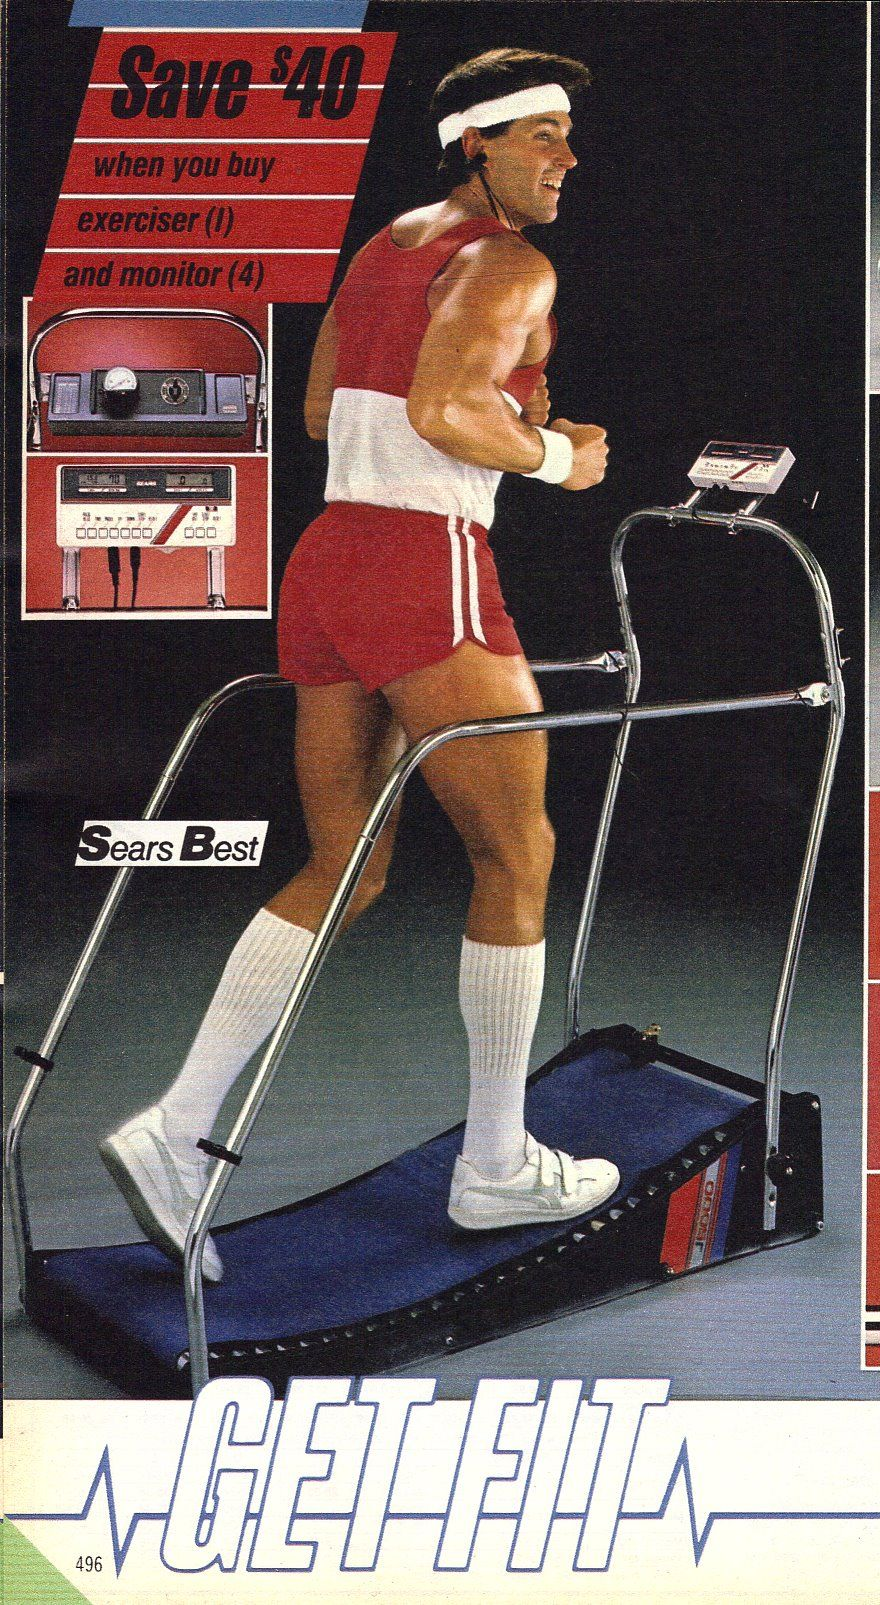 80S Workout Porn 80s #fitness #fashion #workout #clothes #sears #treadmill